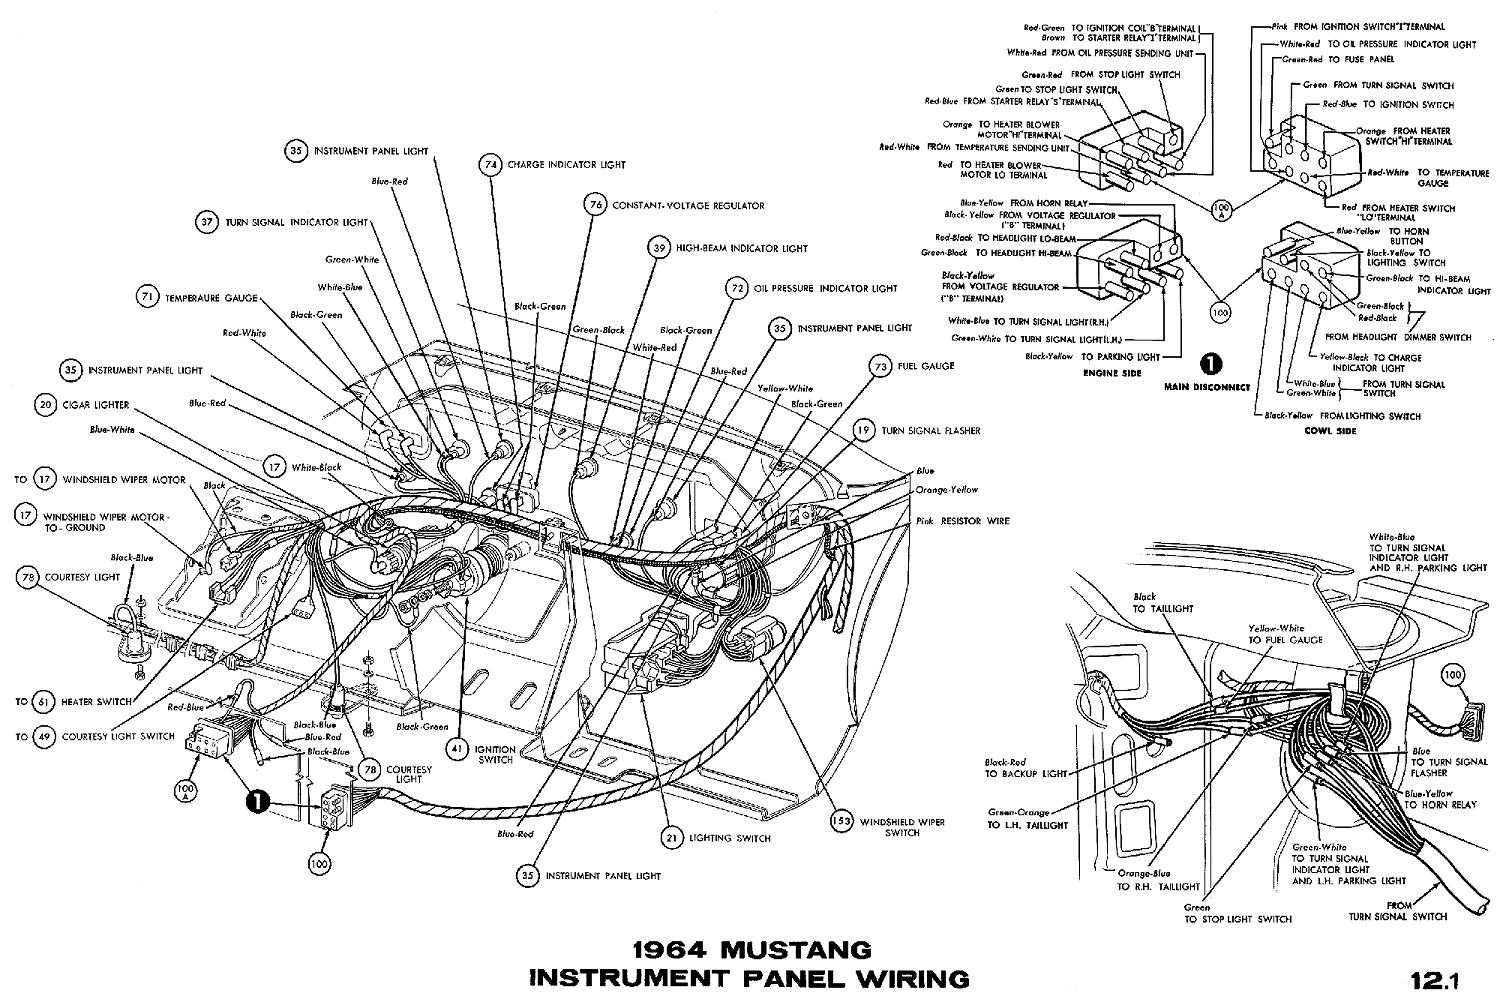 gm courtesy light wiring diagram 2012 ford mustang courtesy light wiring | wiring library